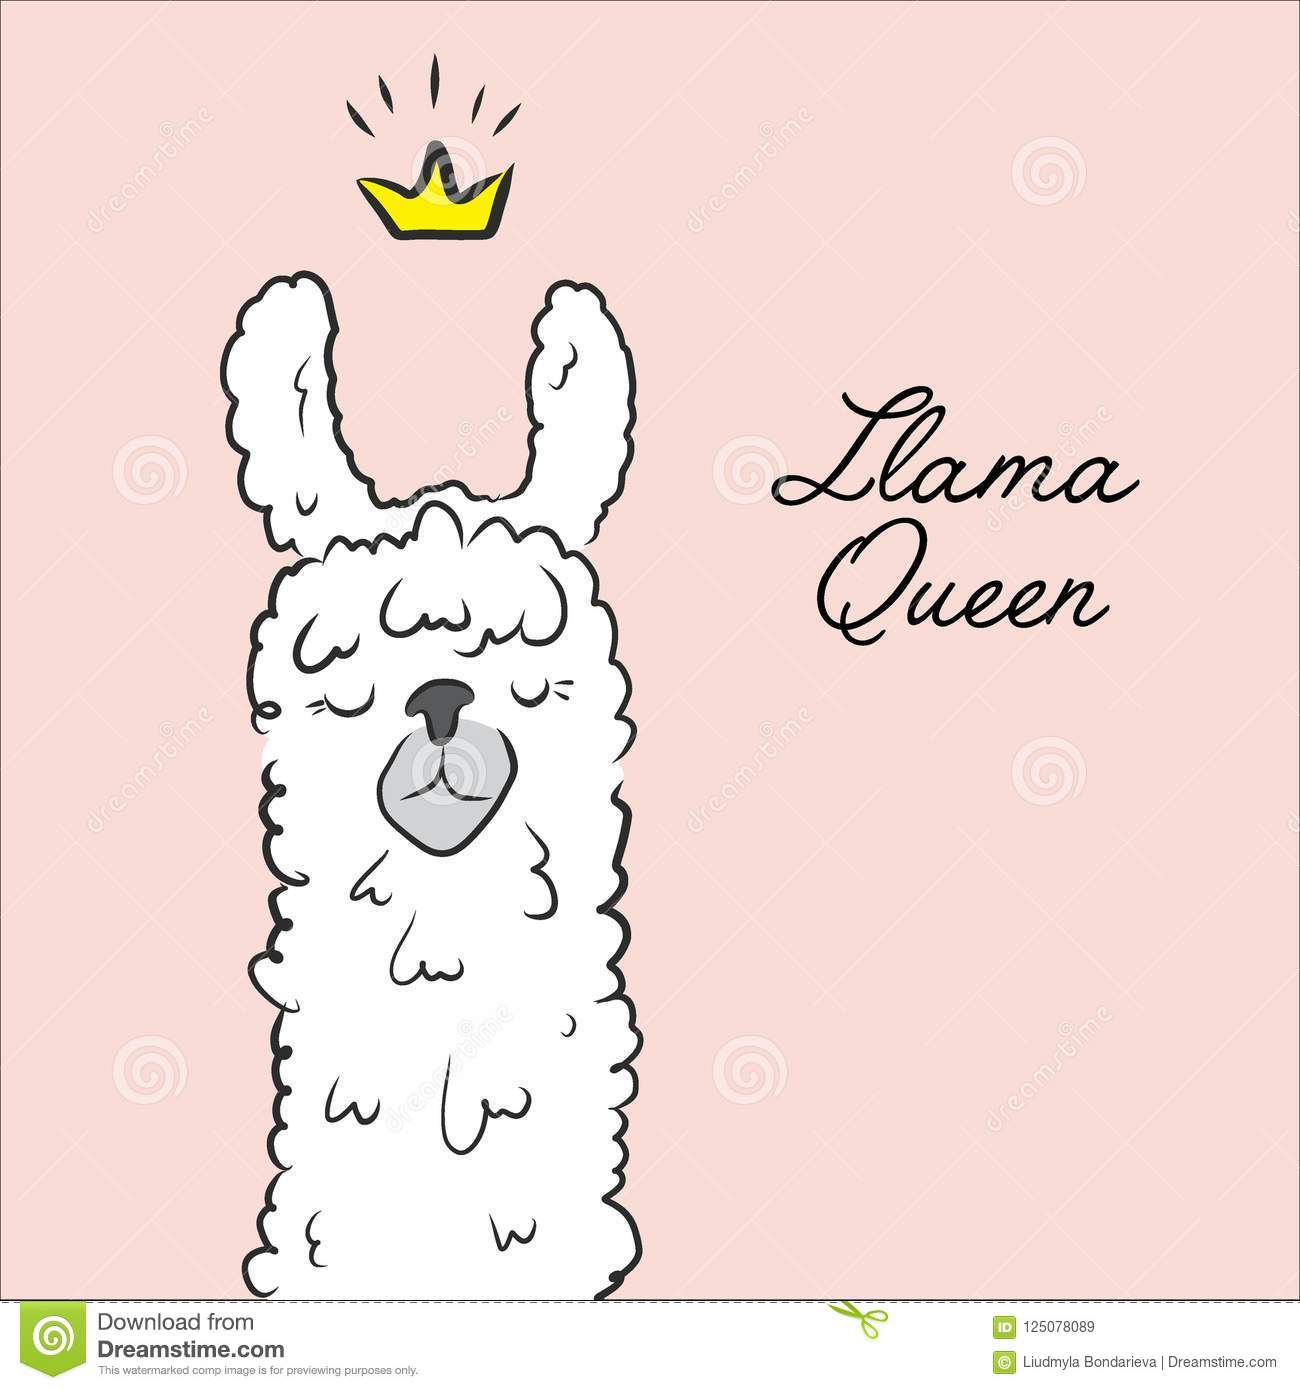 Llama Queen Drawing Animal Cute Cartoon Alpaca With Crown Illustration Cartoon Kids Character Cool Slogan Text Stock Vector Illustration Of Element Clothe 125078089 There are 4218 cartoon crown for sale on etsy, and they cost $8.05 on average. https www dreamstime com llama queen drawing animal cute cartoon alpaca crown illustration kids character cool slogan text image125078089